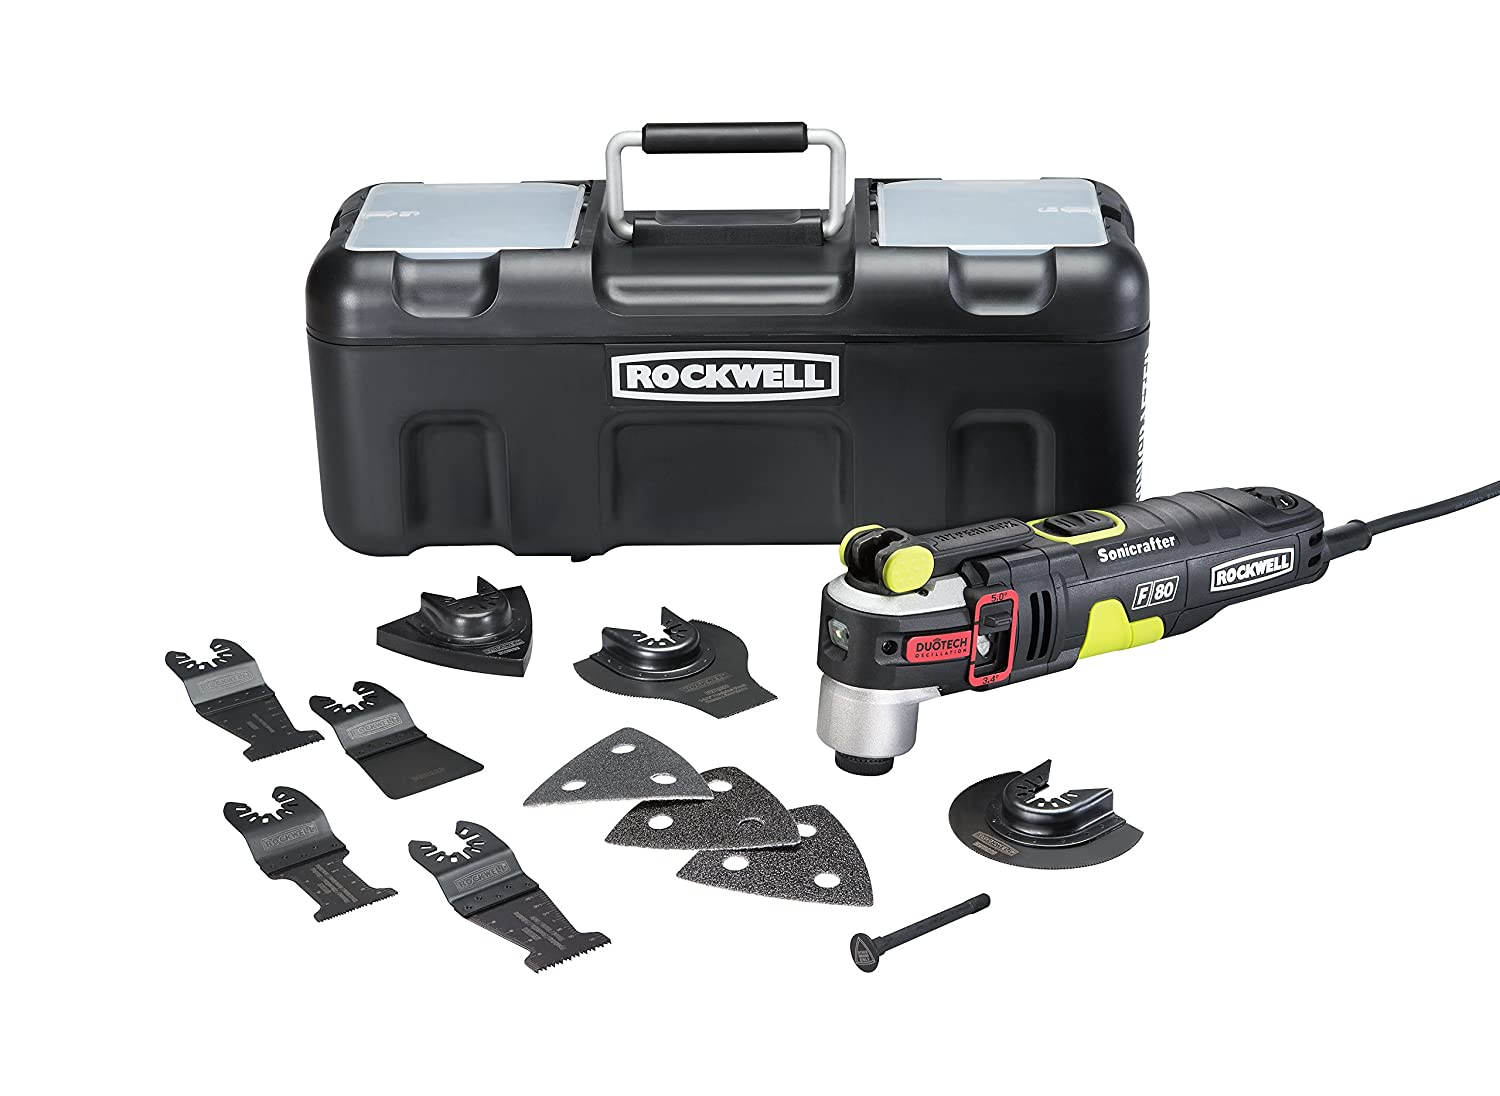 Rockwell RK5151K 4.2 Amp Sonicrafter F80 Oscillating Multi Tool with Duotech Oscillation Angle Technology. 12 Piece Kit includes 10 Accessories Carrying Bag and Oscillating Tool